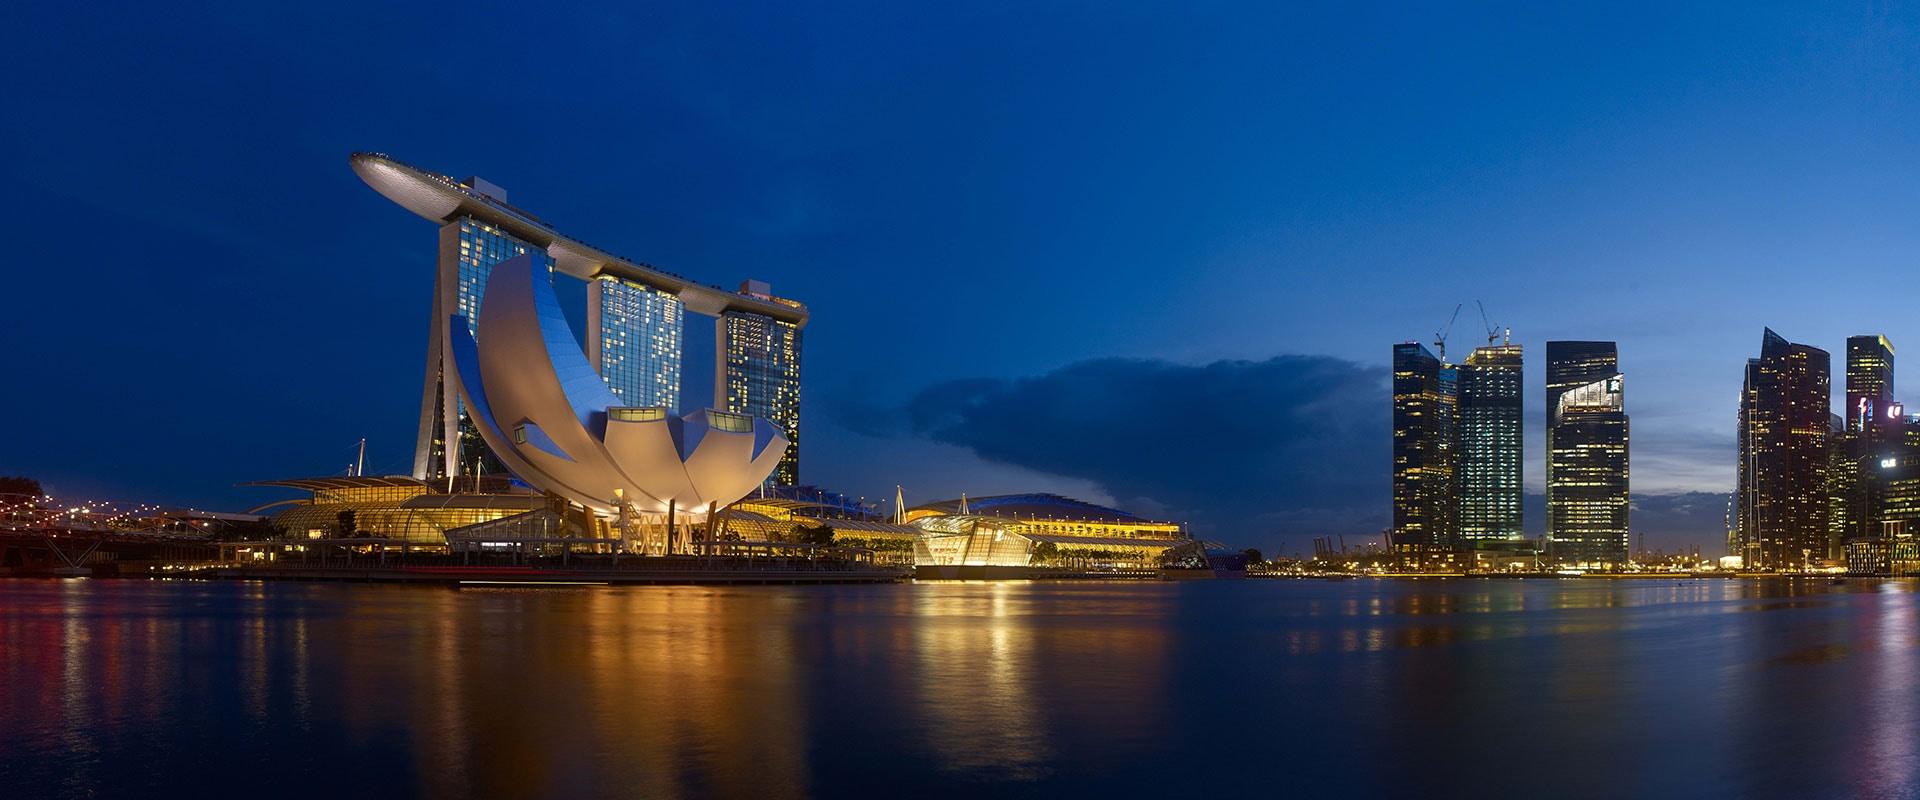 https://jp.marinabaysands.com/content/dam/singapore/marinabaysands/master/main/home/hotel/offers/never-settle-ja-indulgence/NeverSettleOffer_1920x800.jpg